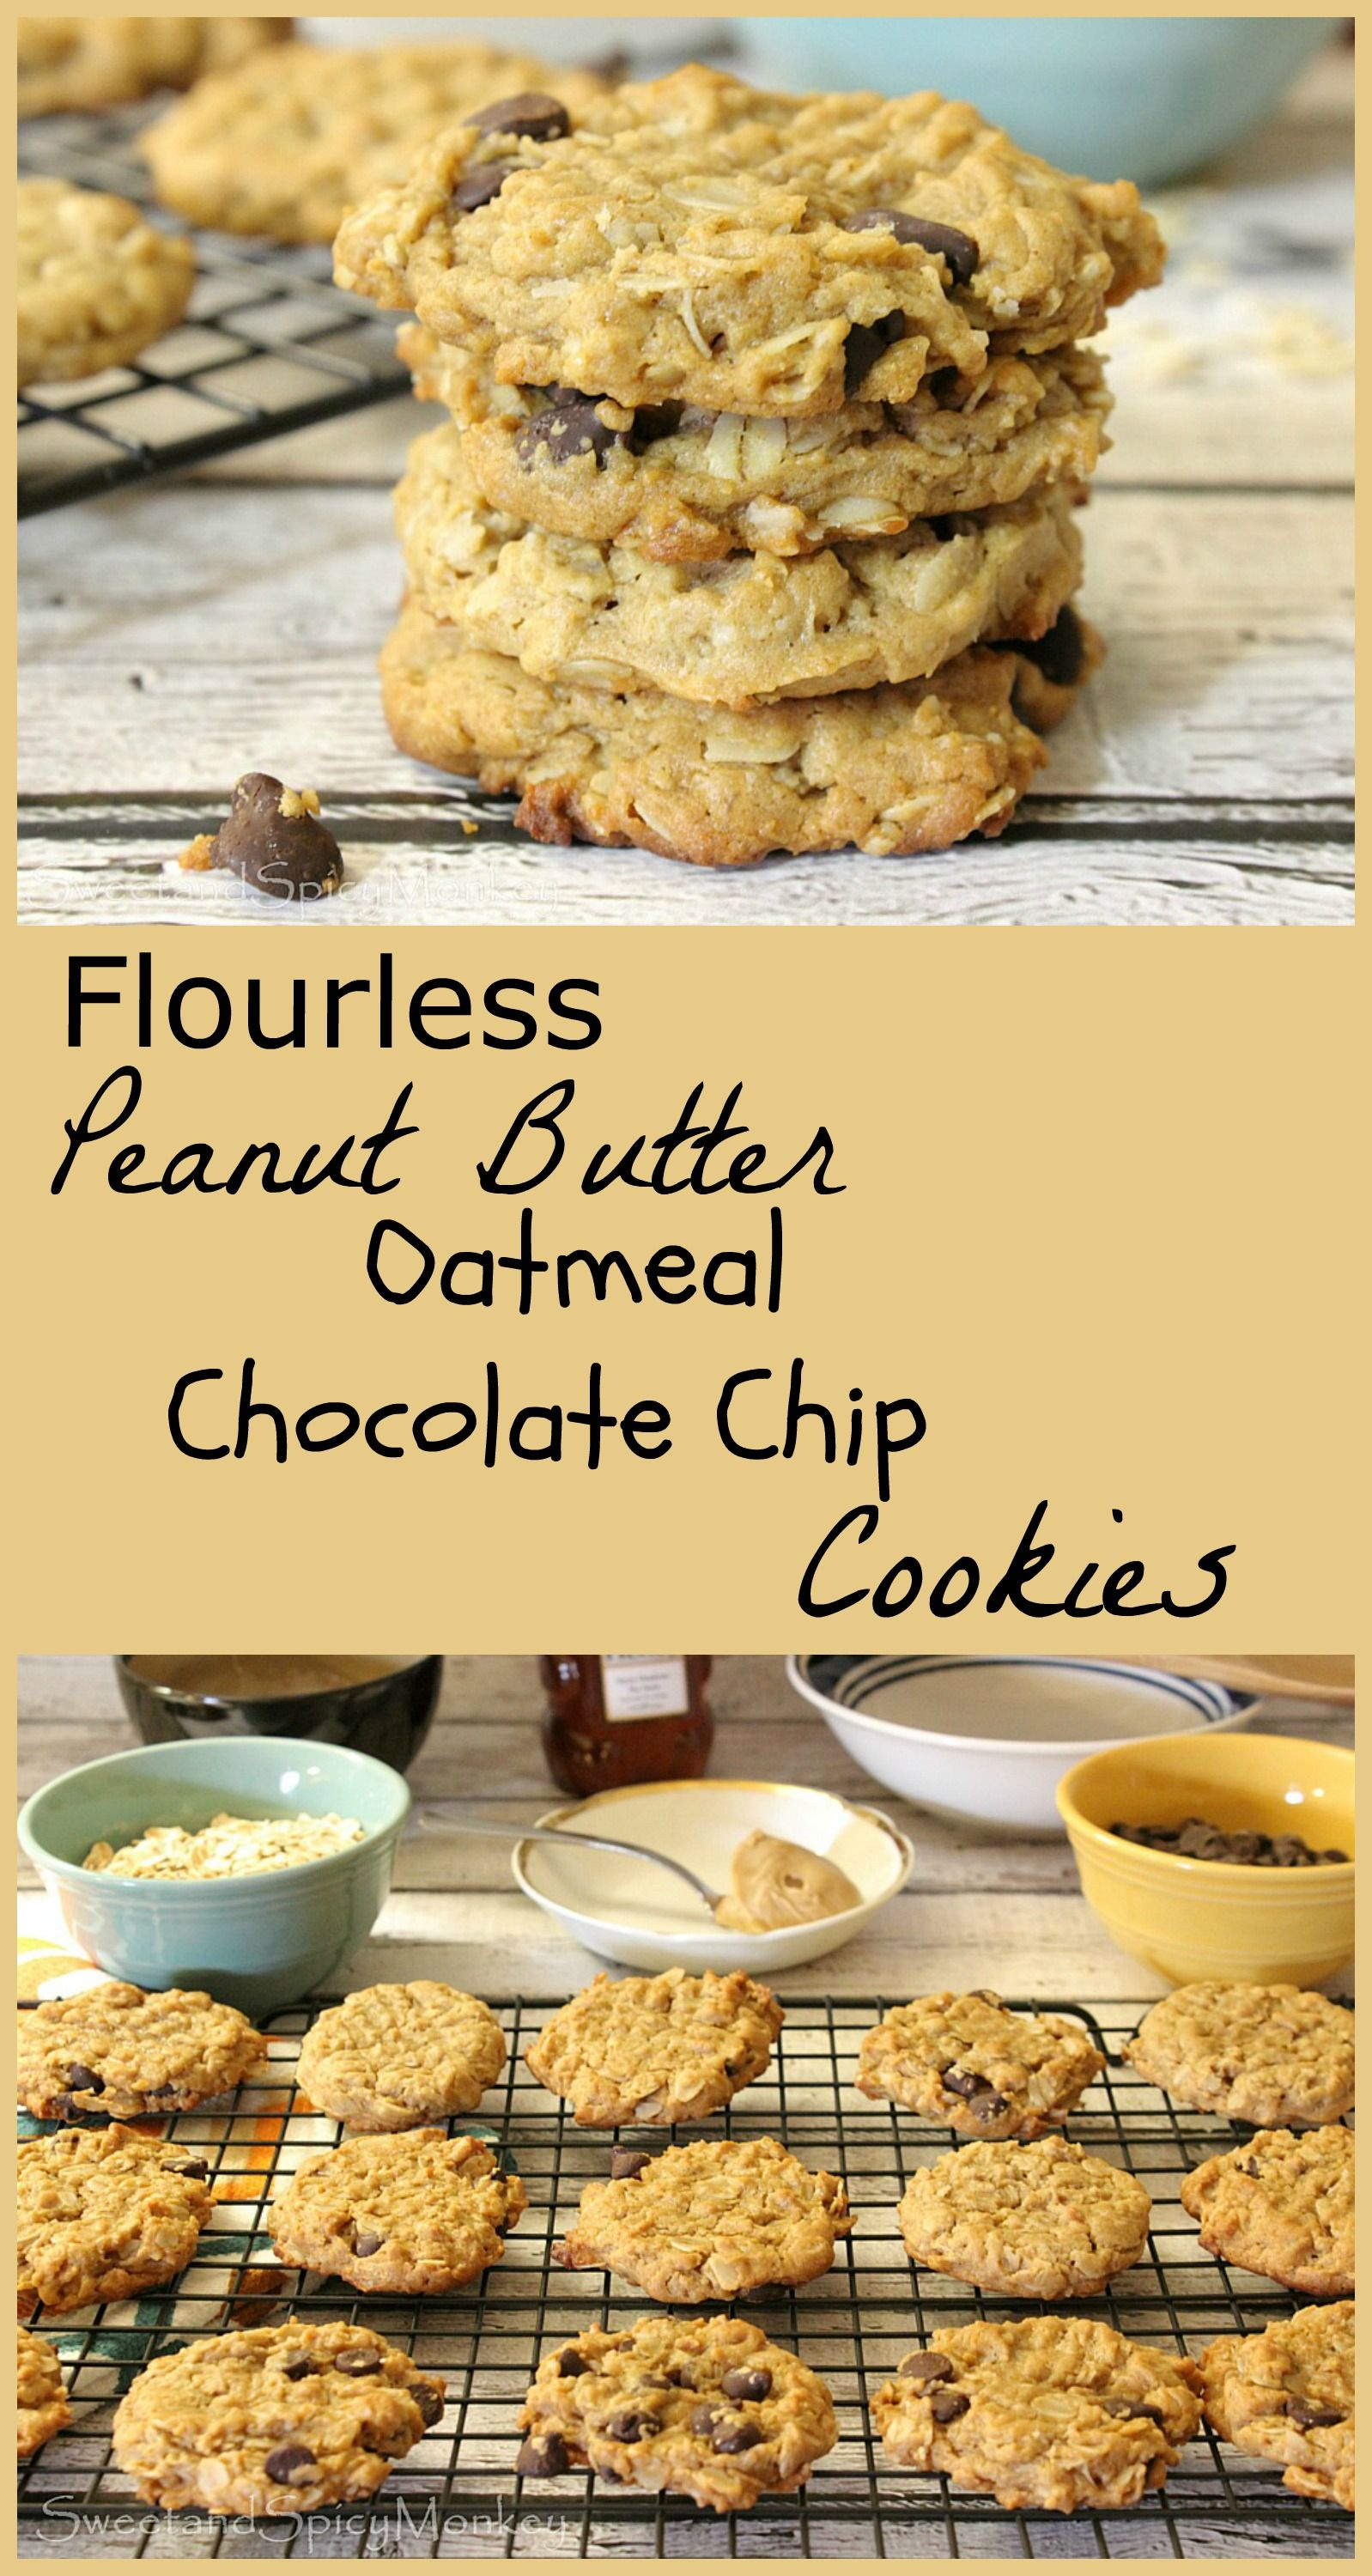 Flourless Peanut Butter Oatmeal Chocolate Chip Cookies Healthy